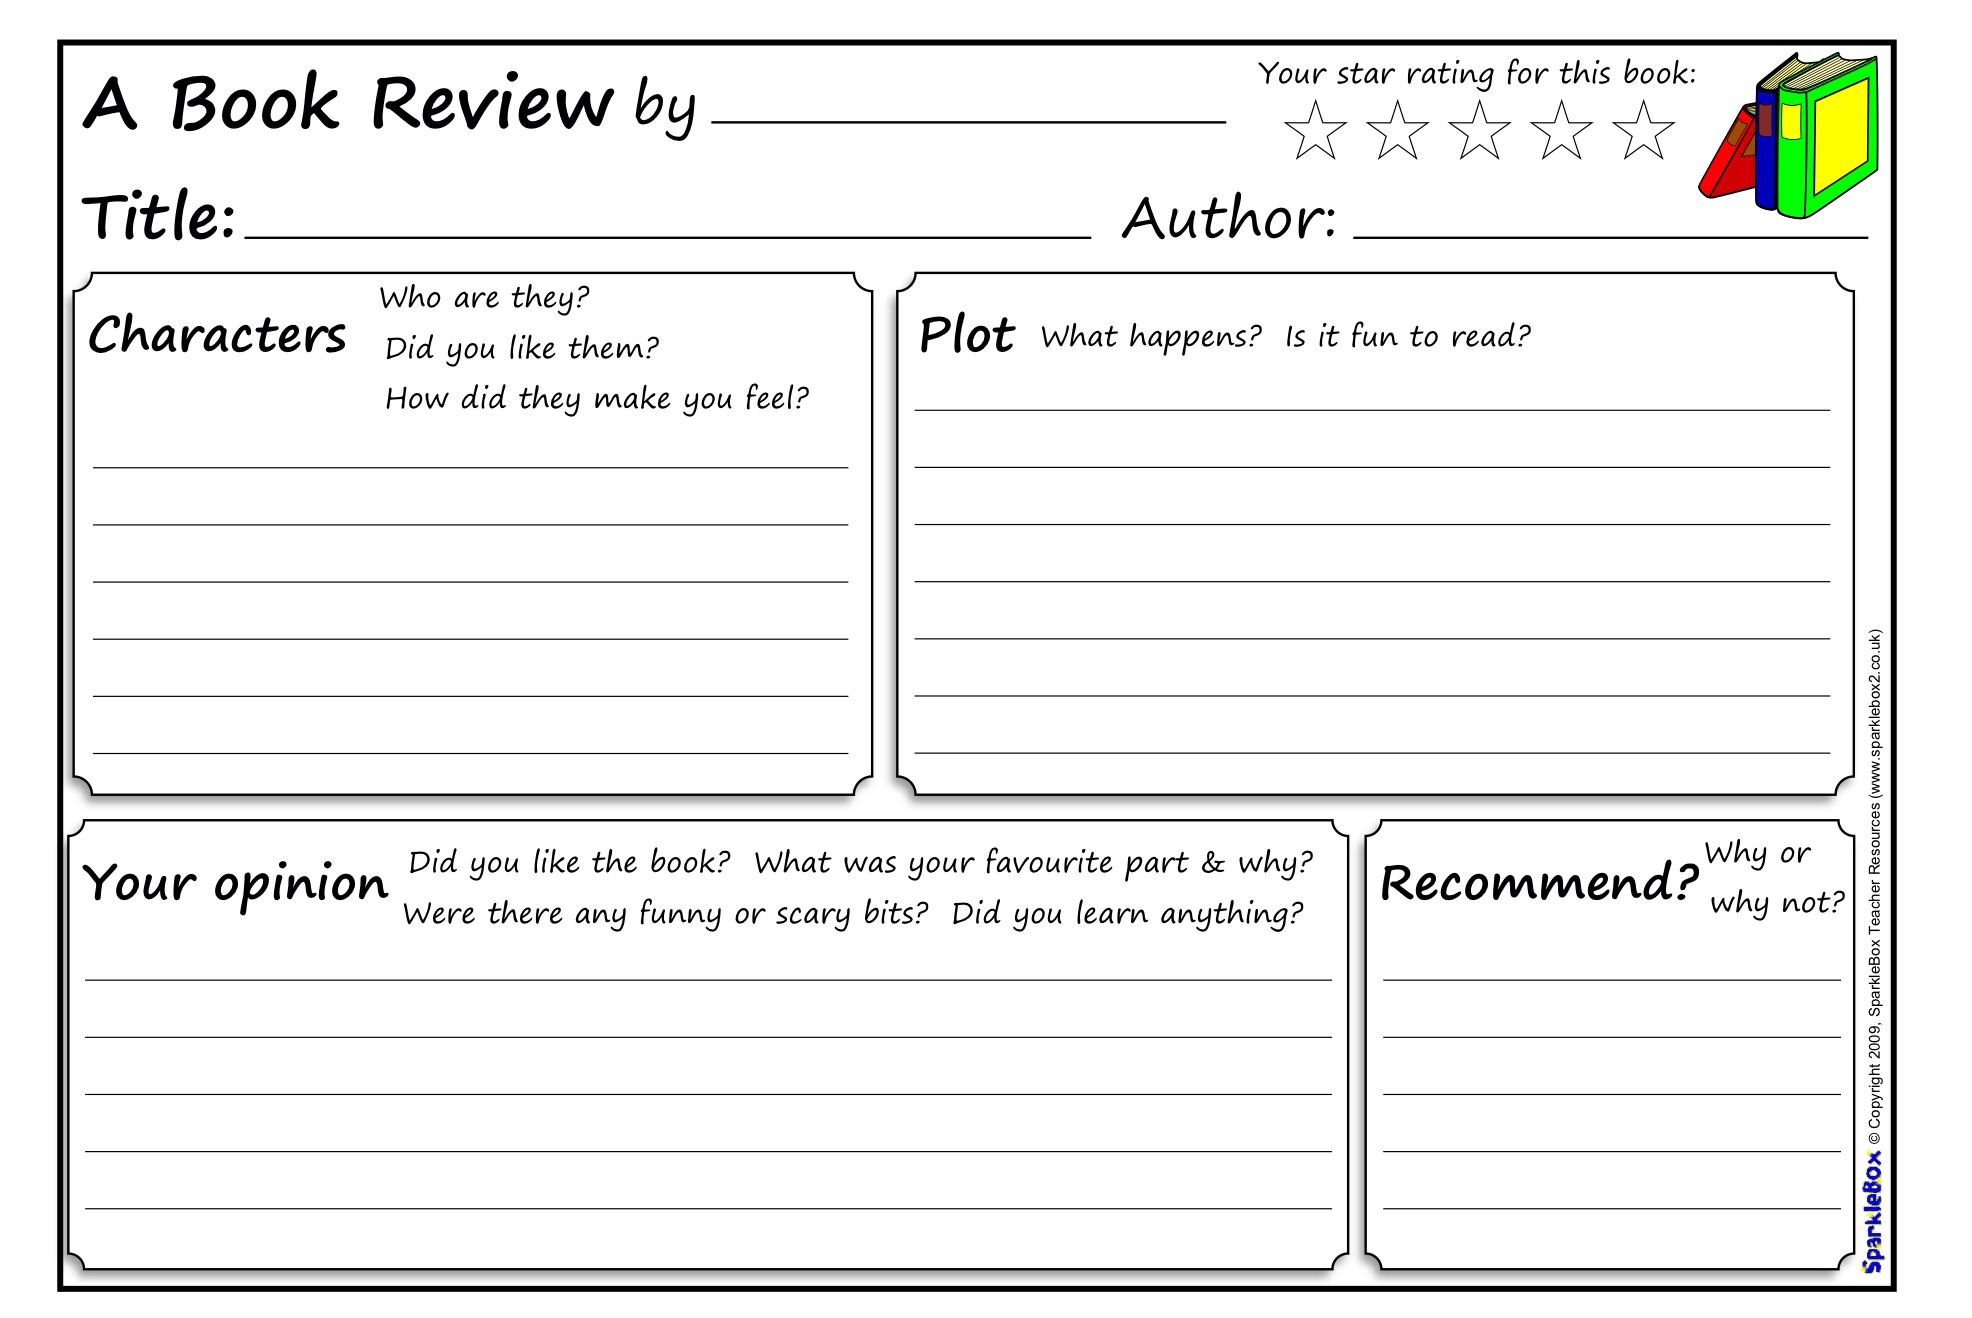 KS2 Book Review | 1 to 1 tutoring | Pinterest